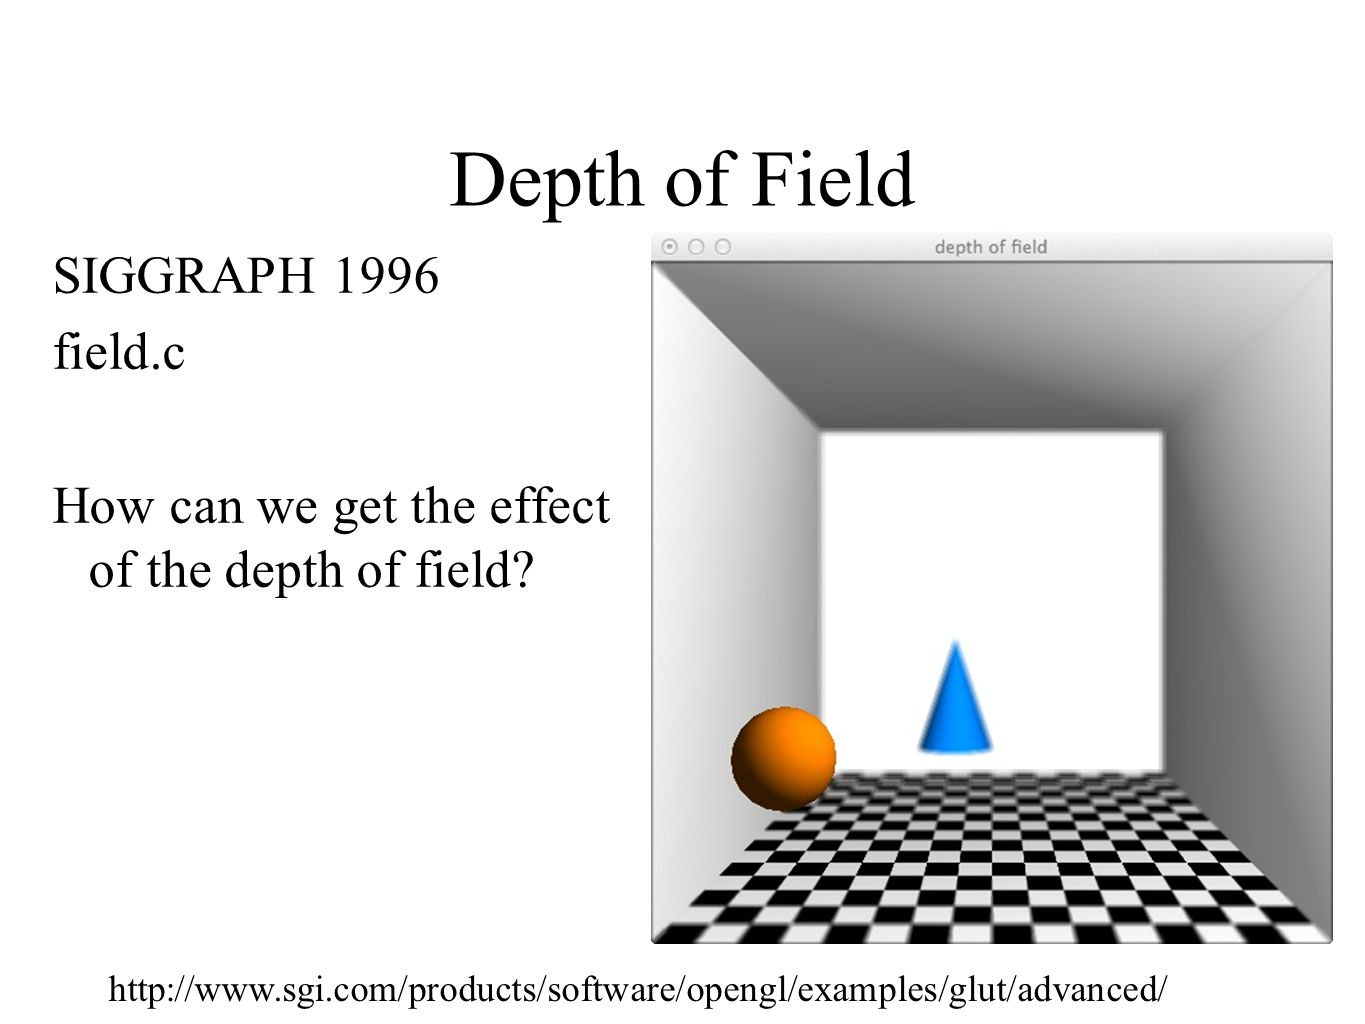 Depth of Field SIGGRAPH 1996 field.c How can we get the effect of the depth of field? http://www.sgi.com/products/software/opengl/examples/glut/advanc